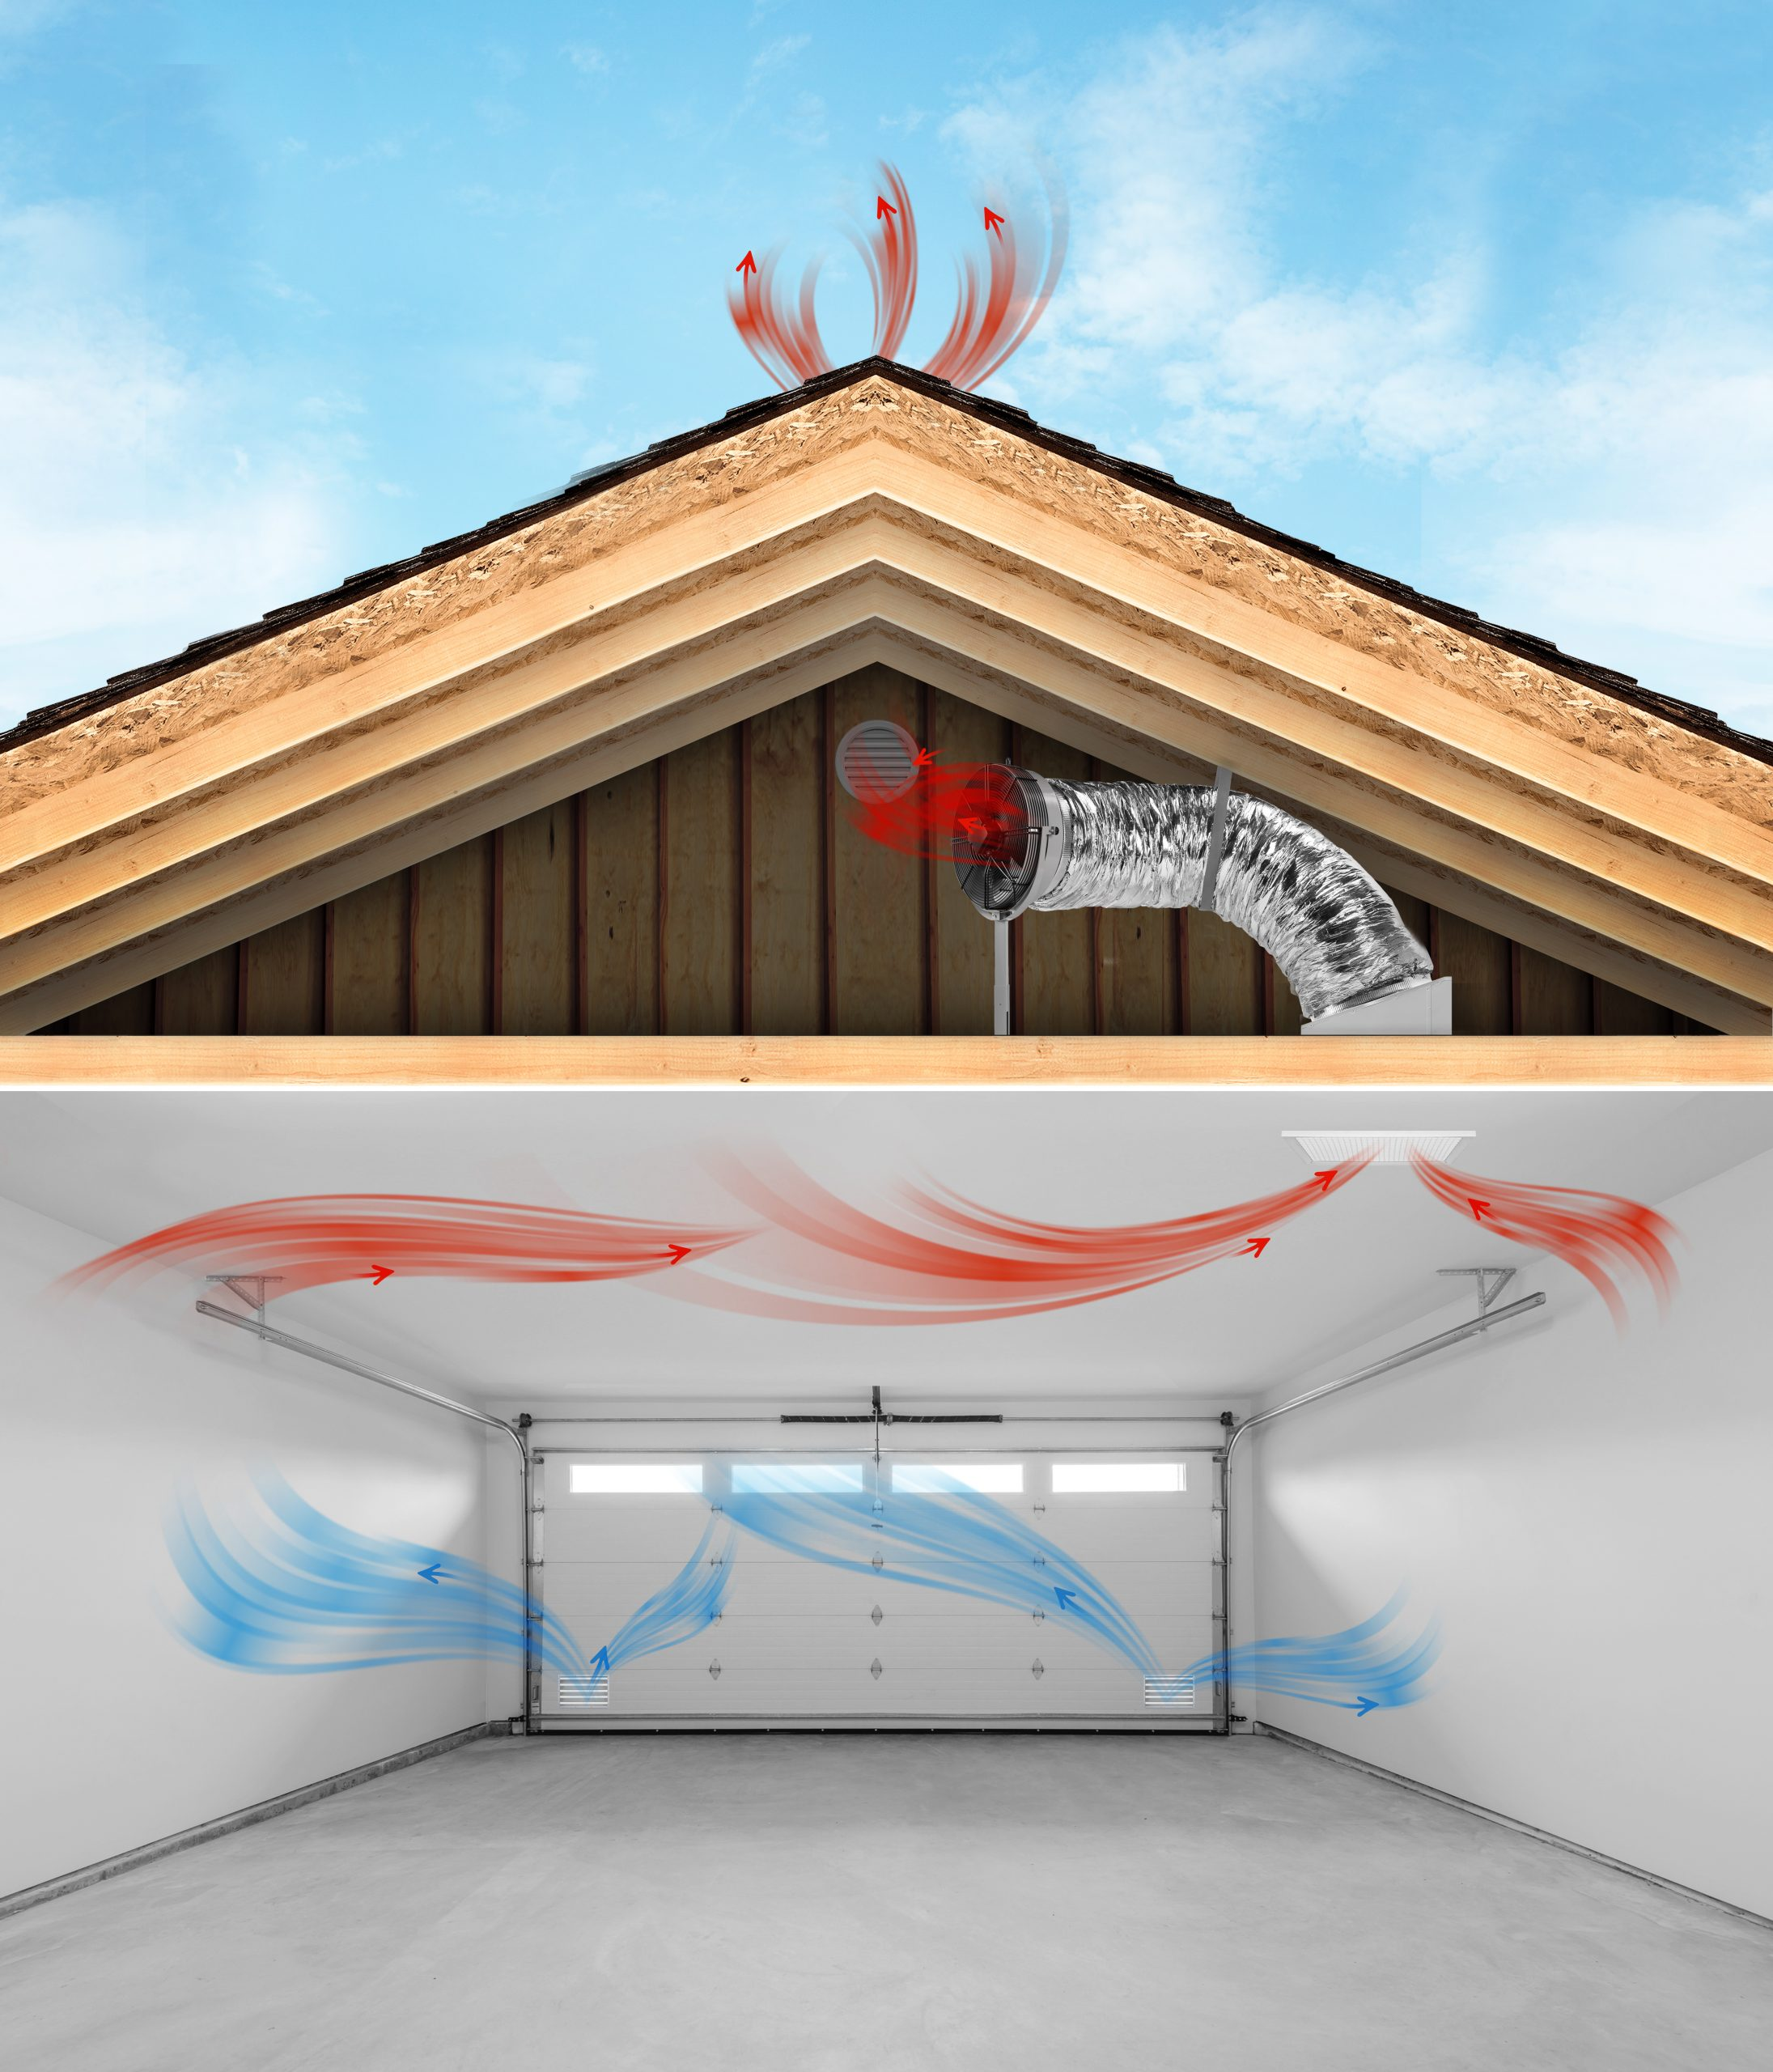 WHF_Closed-Ceiling-Garage-with-Door-Vents